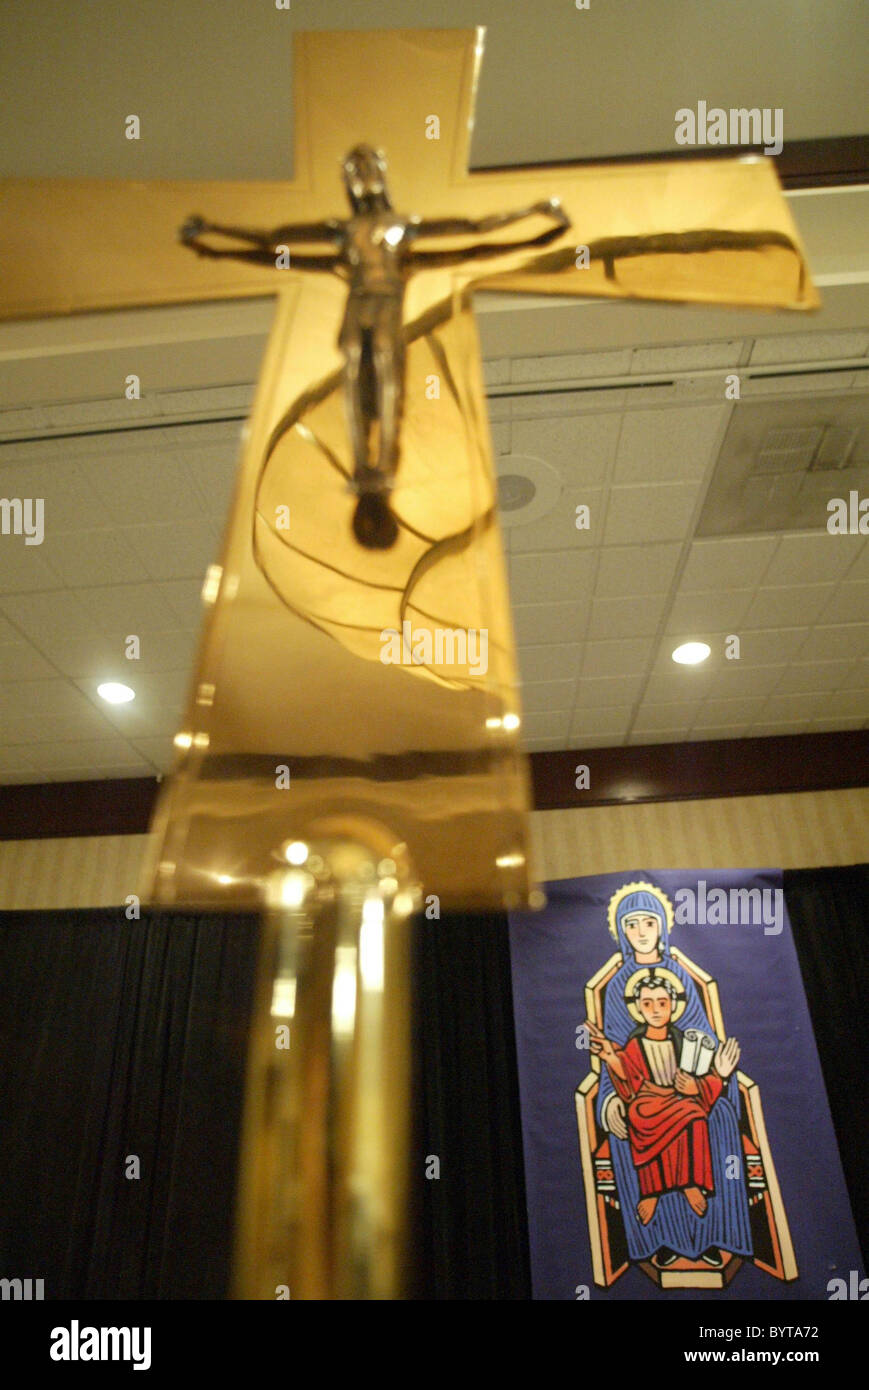 The Catholic Bishop Conference Was Held Over 3 Days At The Hyatt